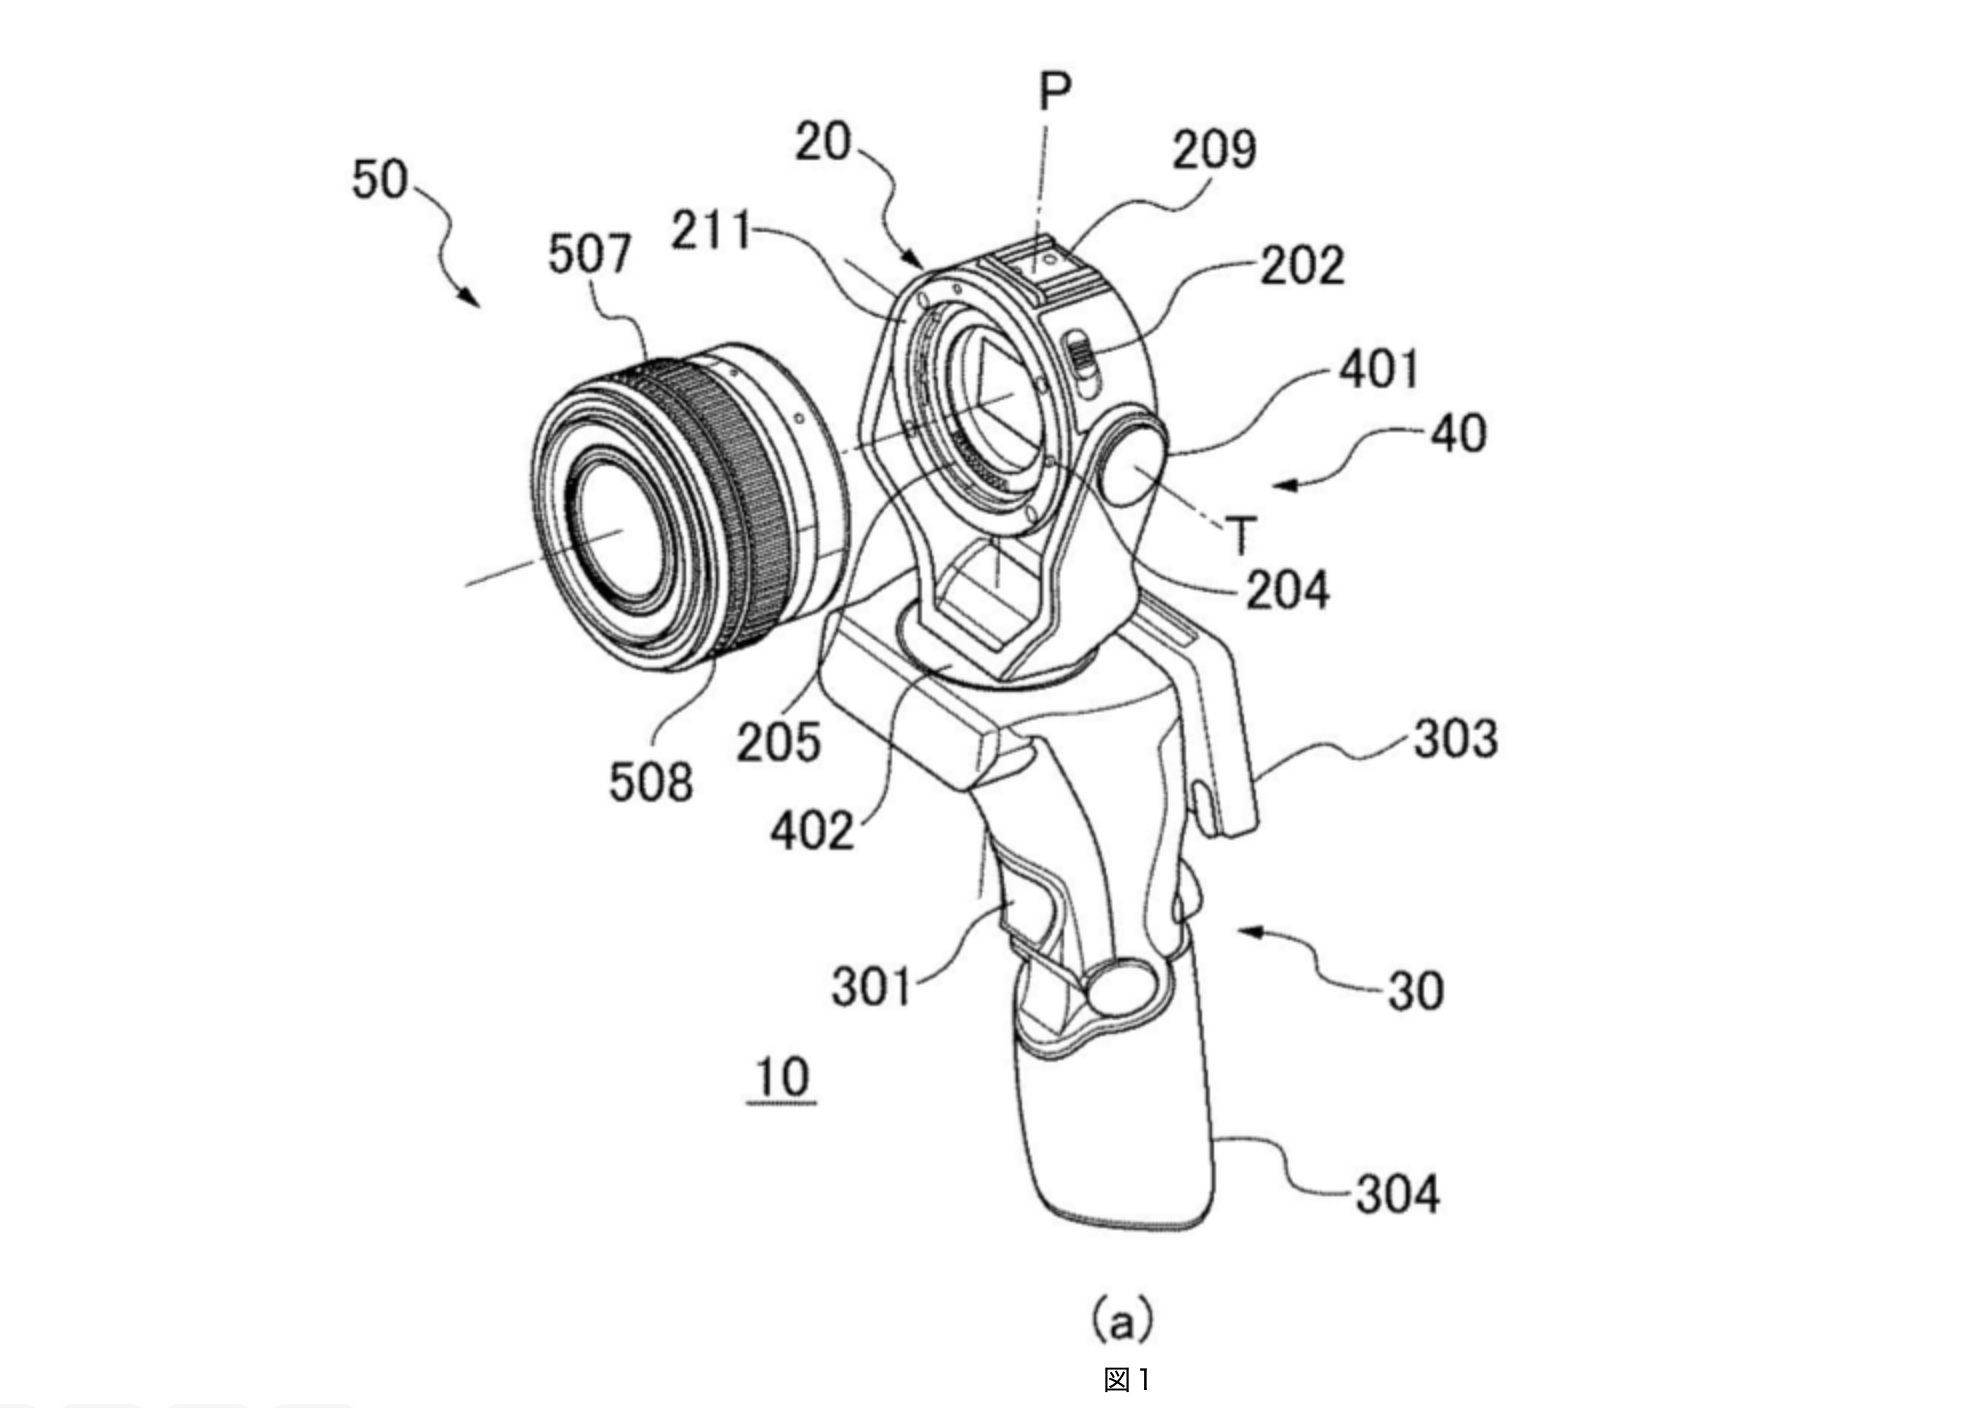 Canon: One-handed gimbal with integrated S35/Fullframe sensor and interchangeable mount coming soon?